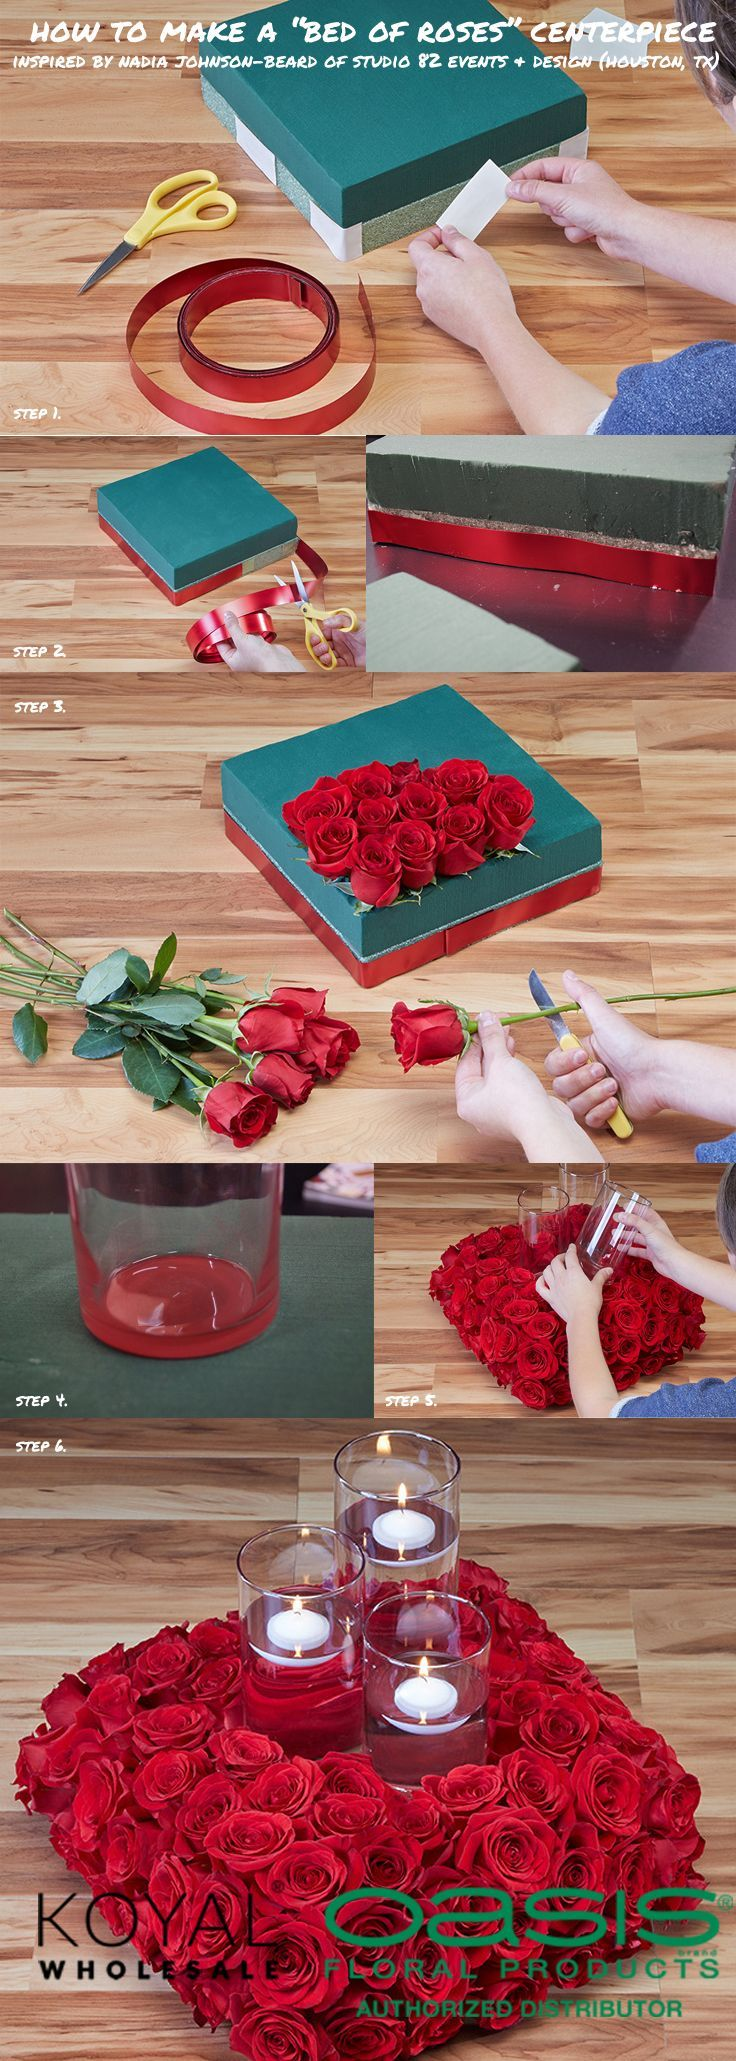 How to make a bed of roses floating candle centerpiece (Inspired by Nadia Johnson-Beard of Studio 82 Events & Design)